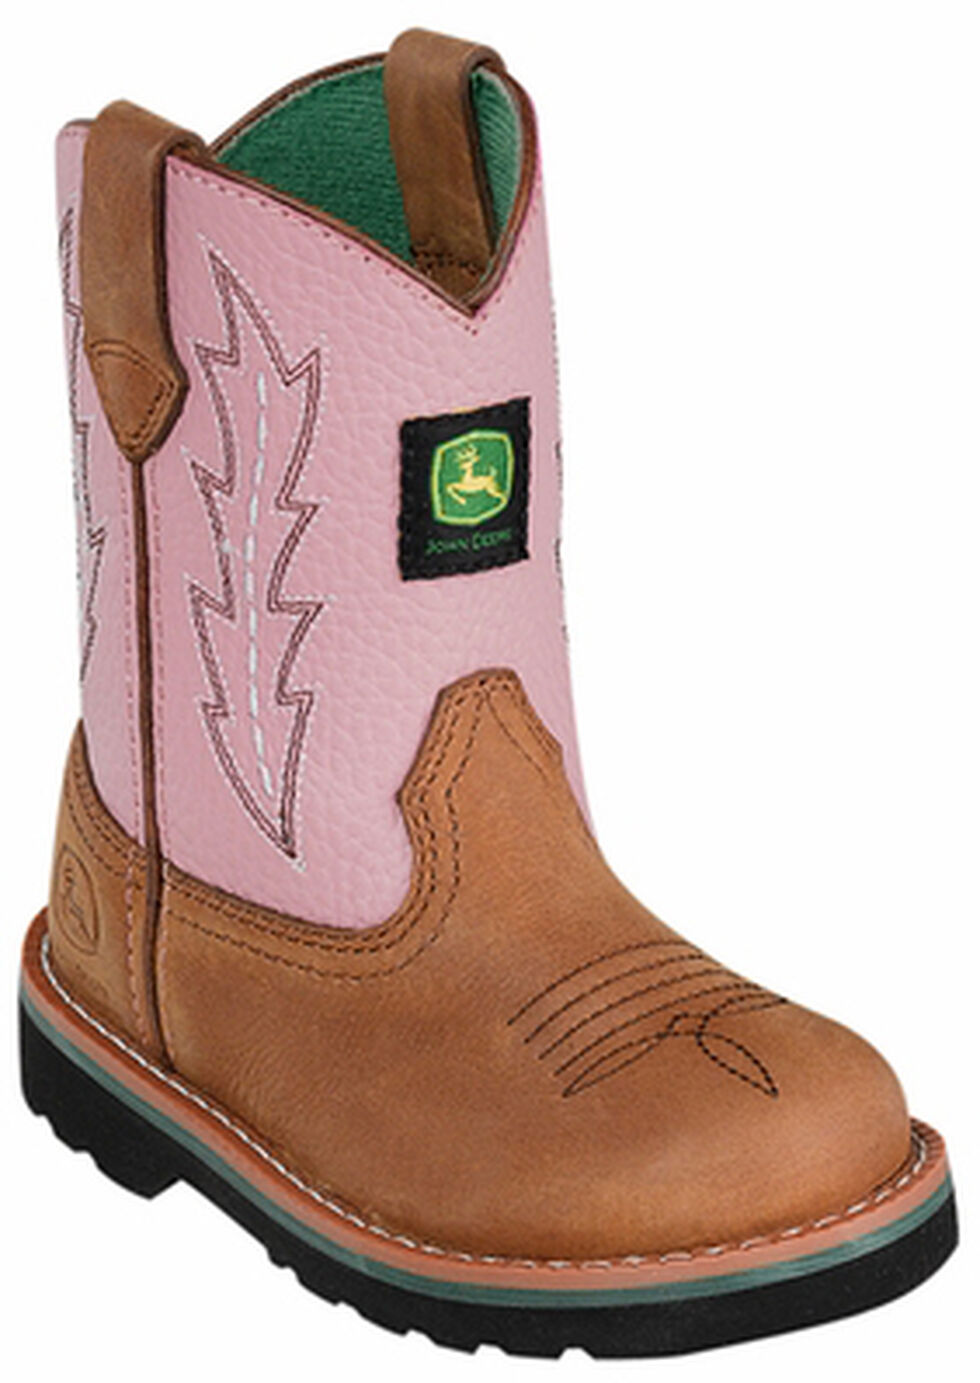 John Deere Youth Girls' Johnny Popper Pink Western Boots - Round Toe, Tan, hi-res